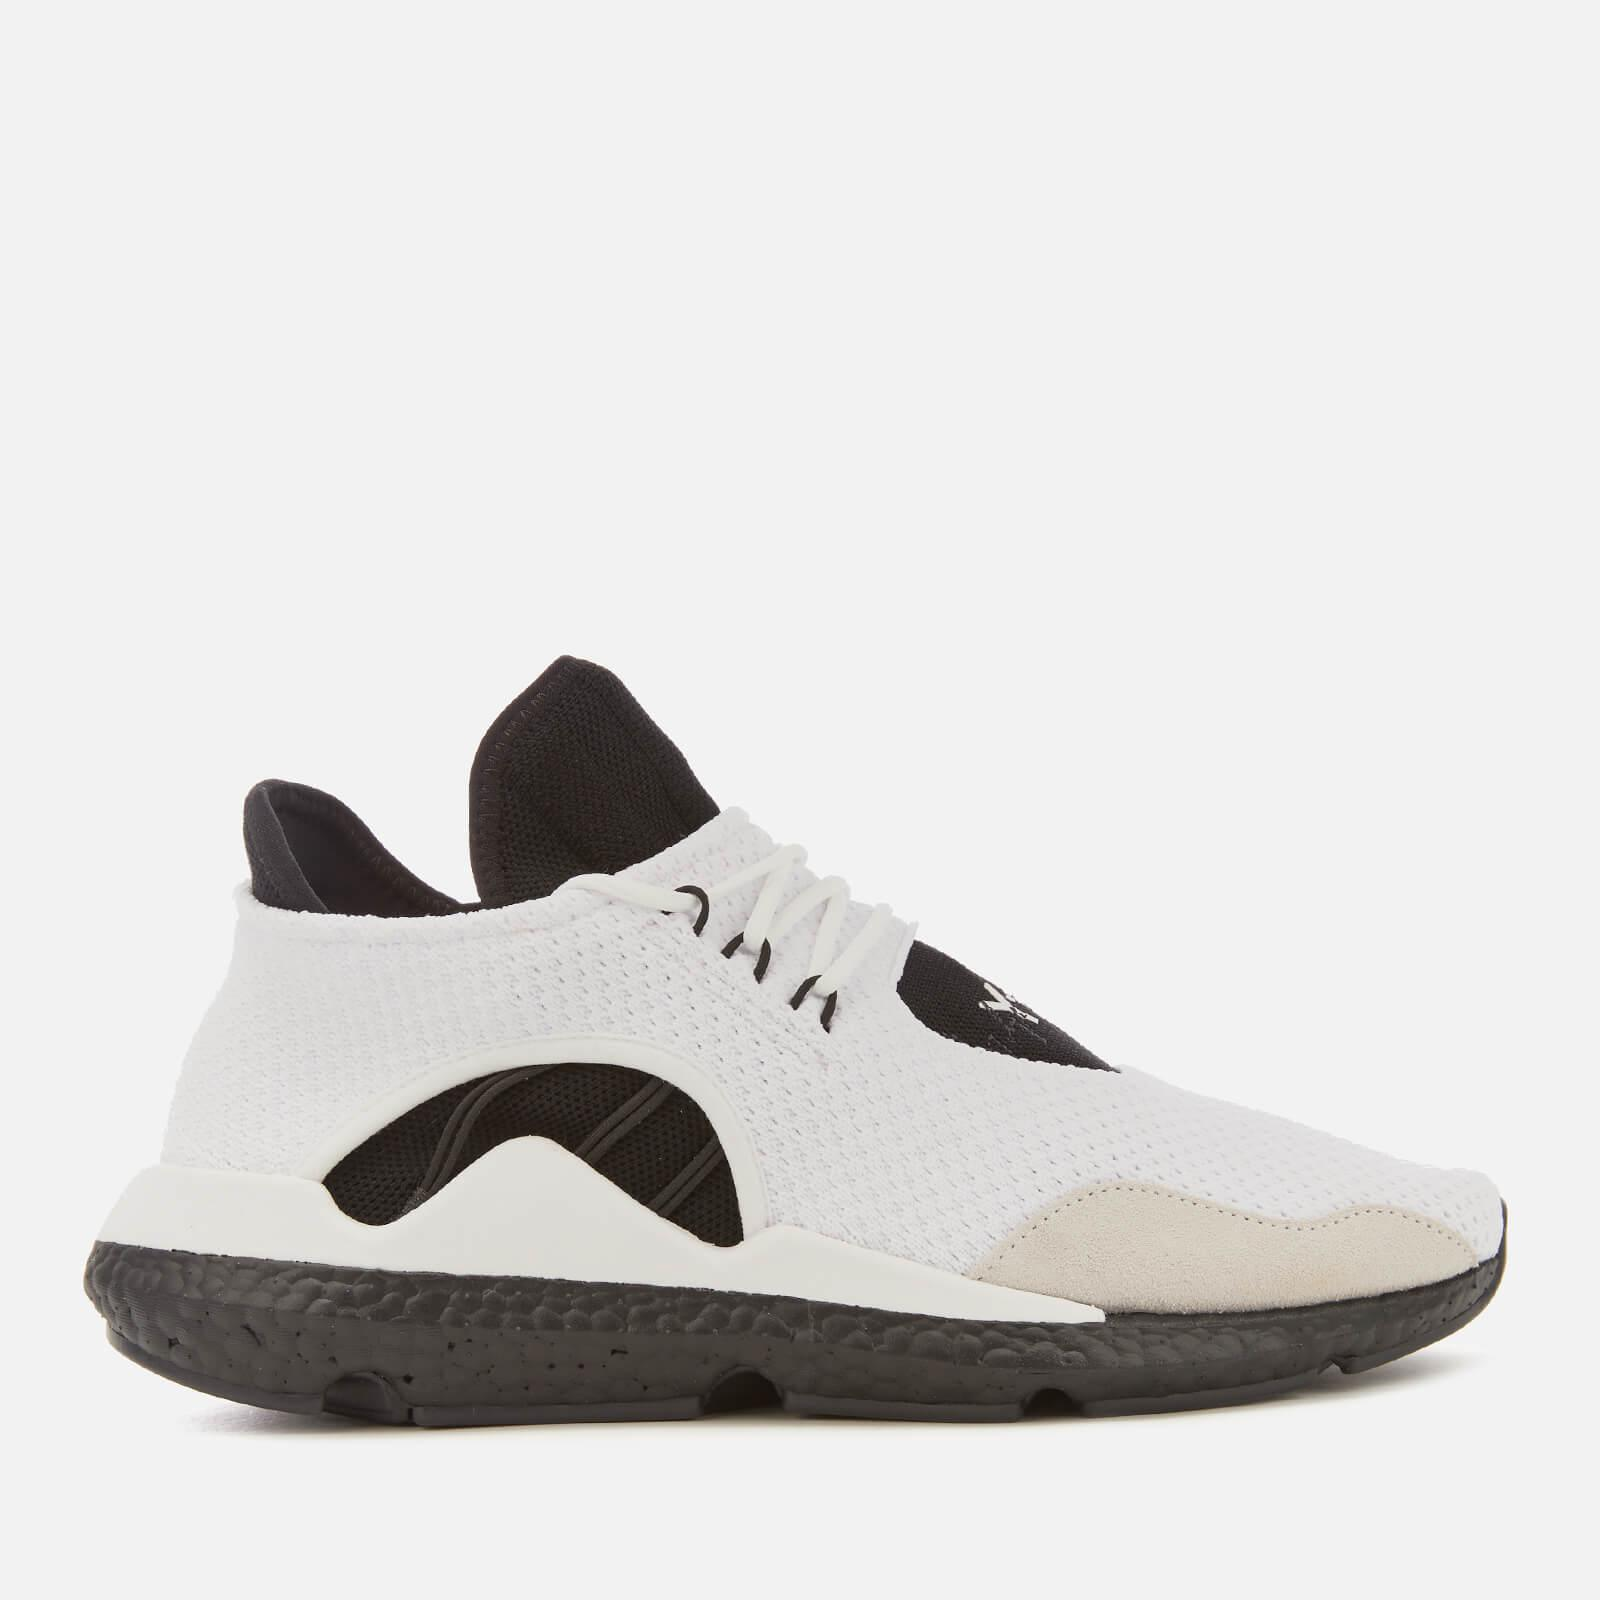 878b572be Lyst - Y-3 Saikou Trainers in White for Men